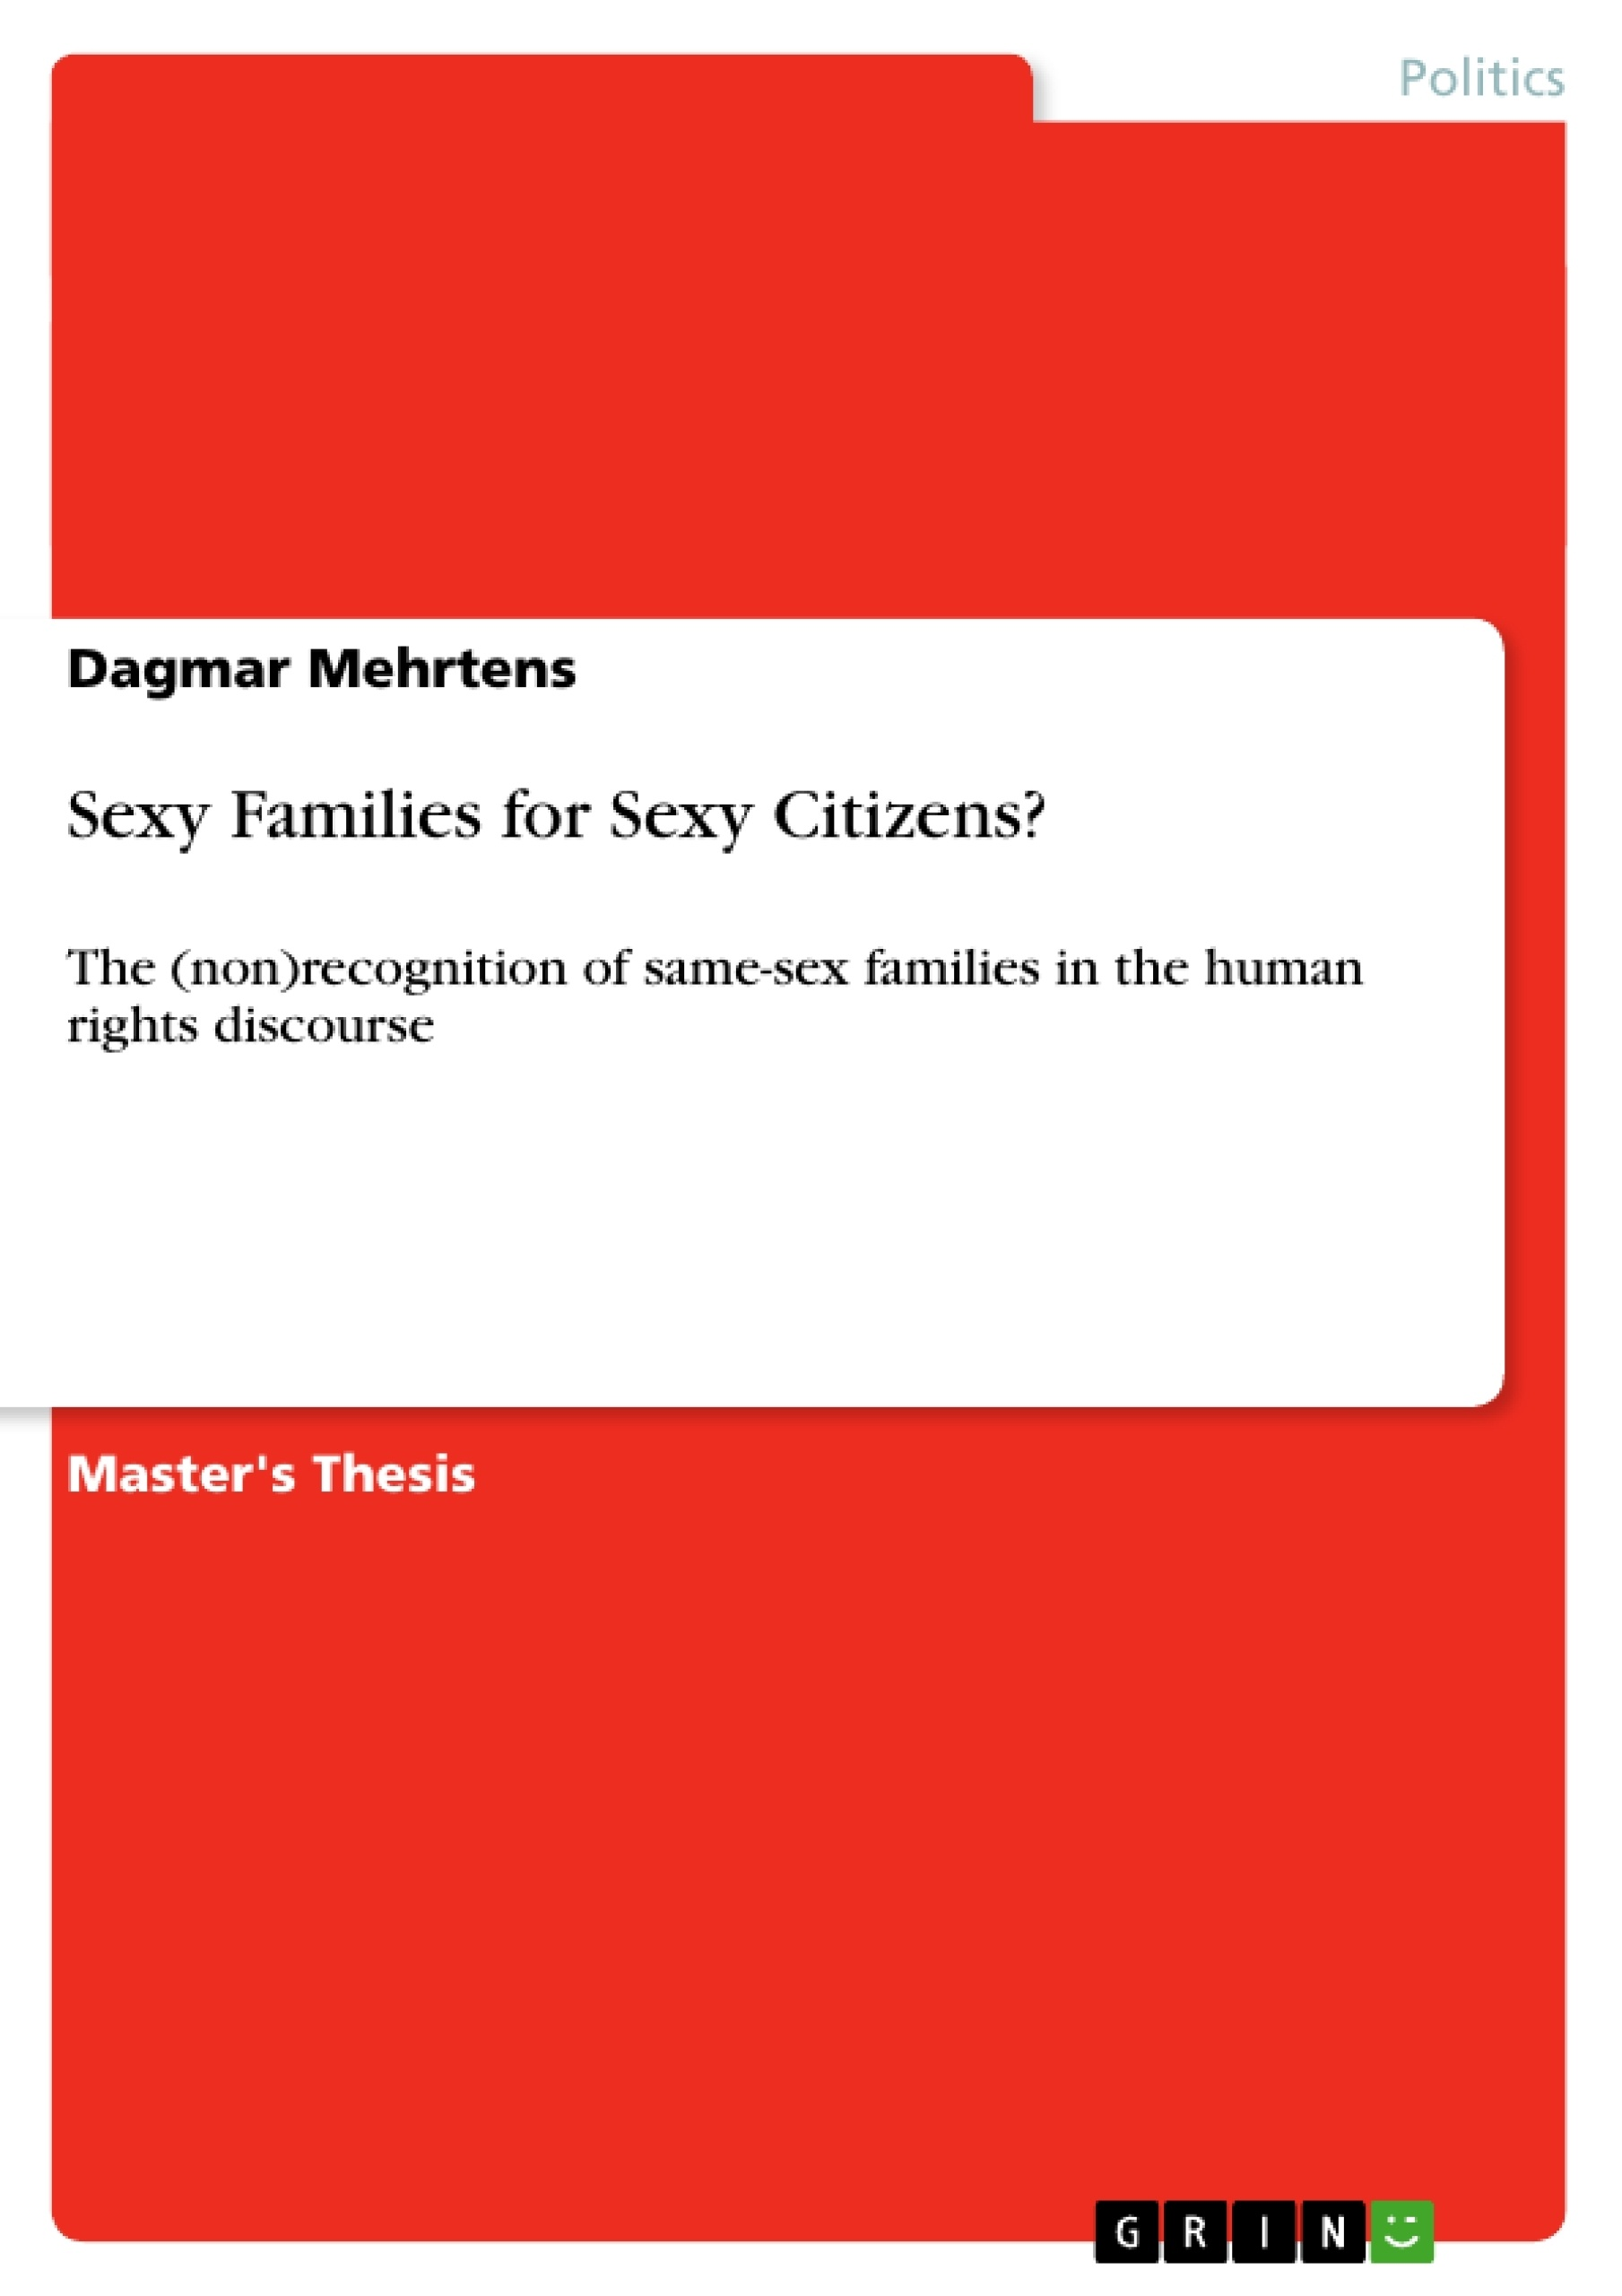 Title: Sexy Families for Sexy Citizens?